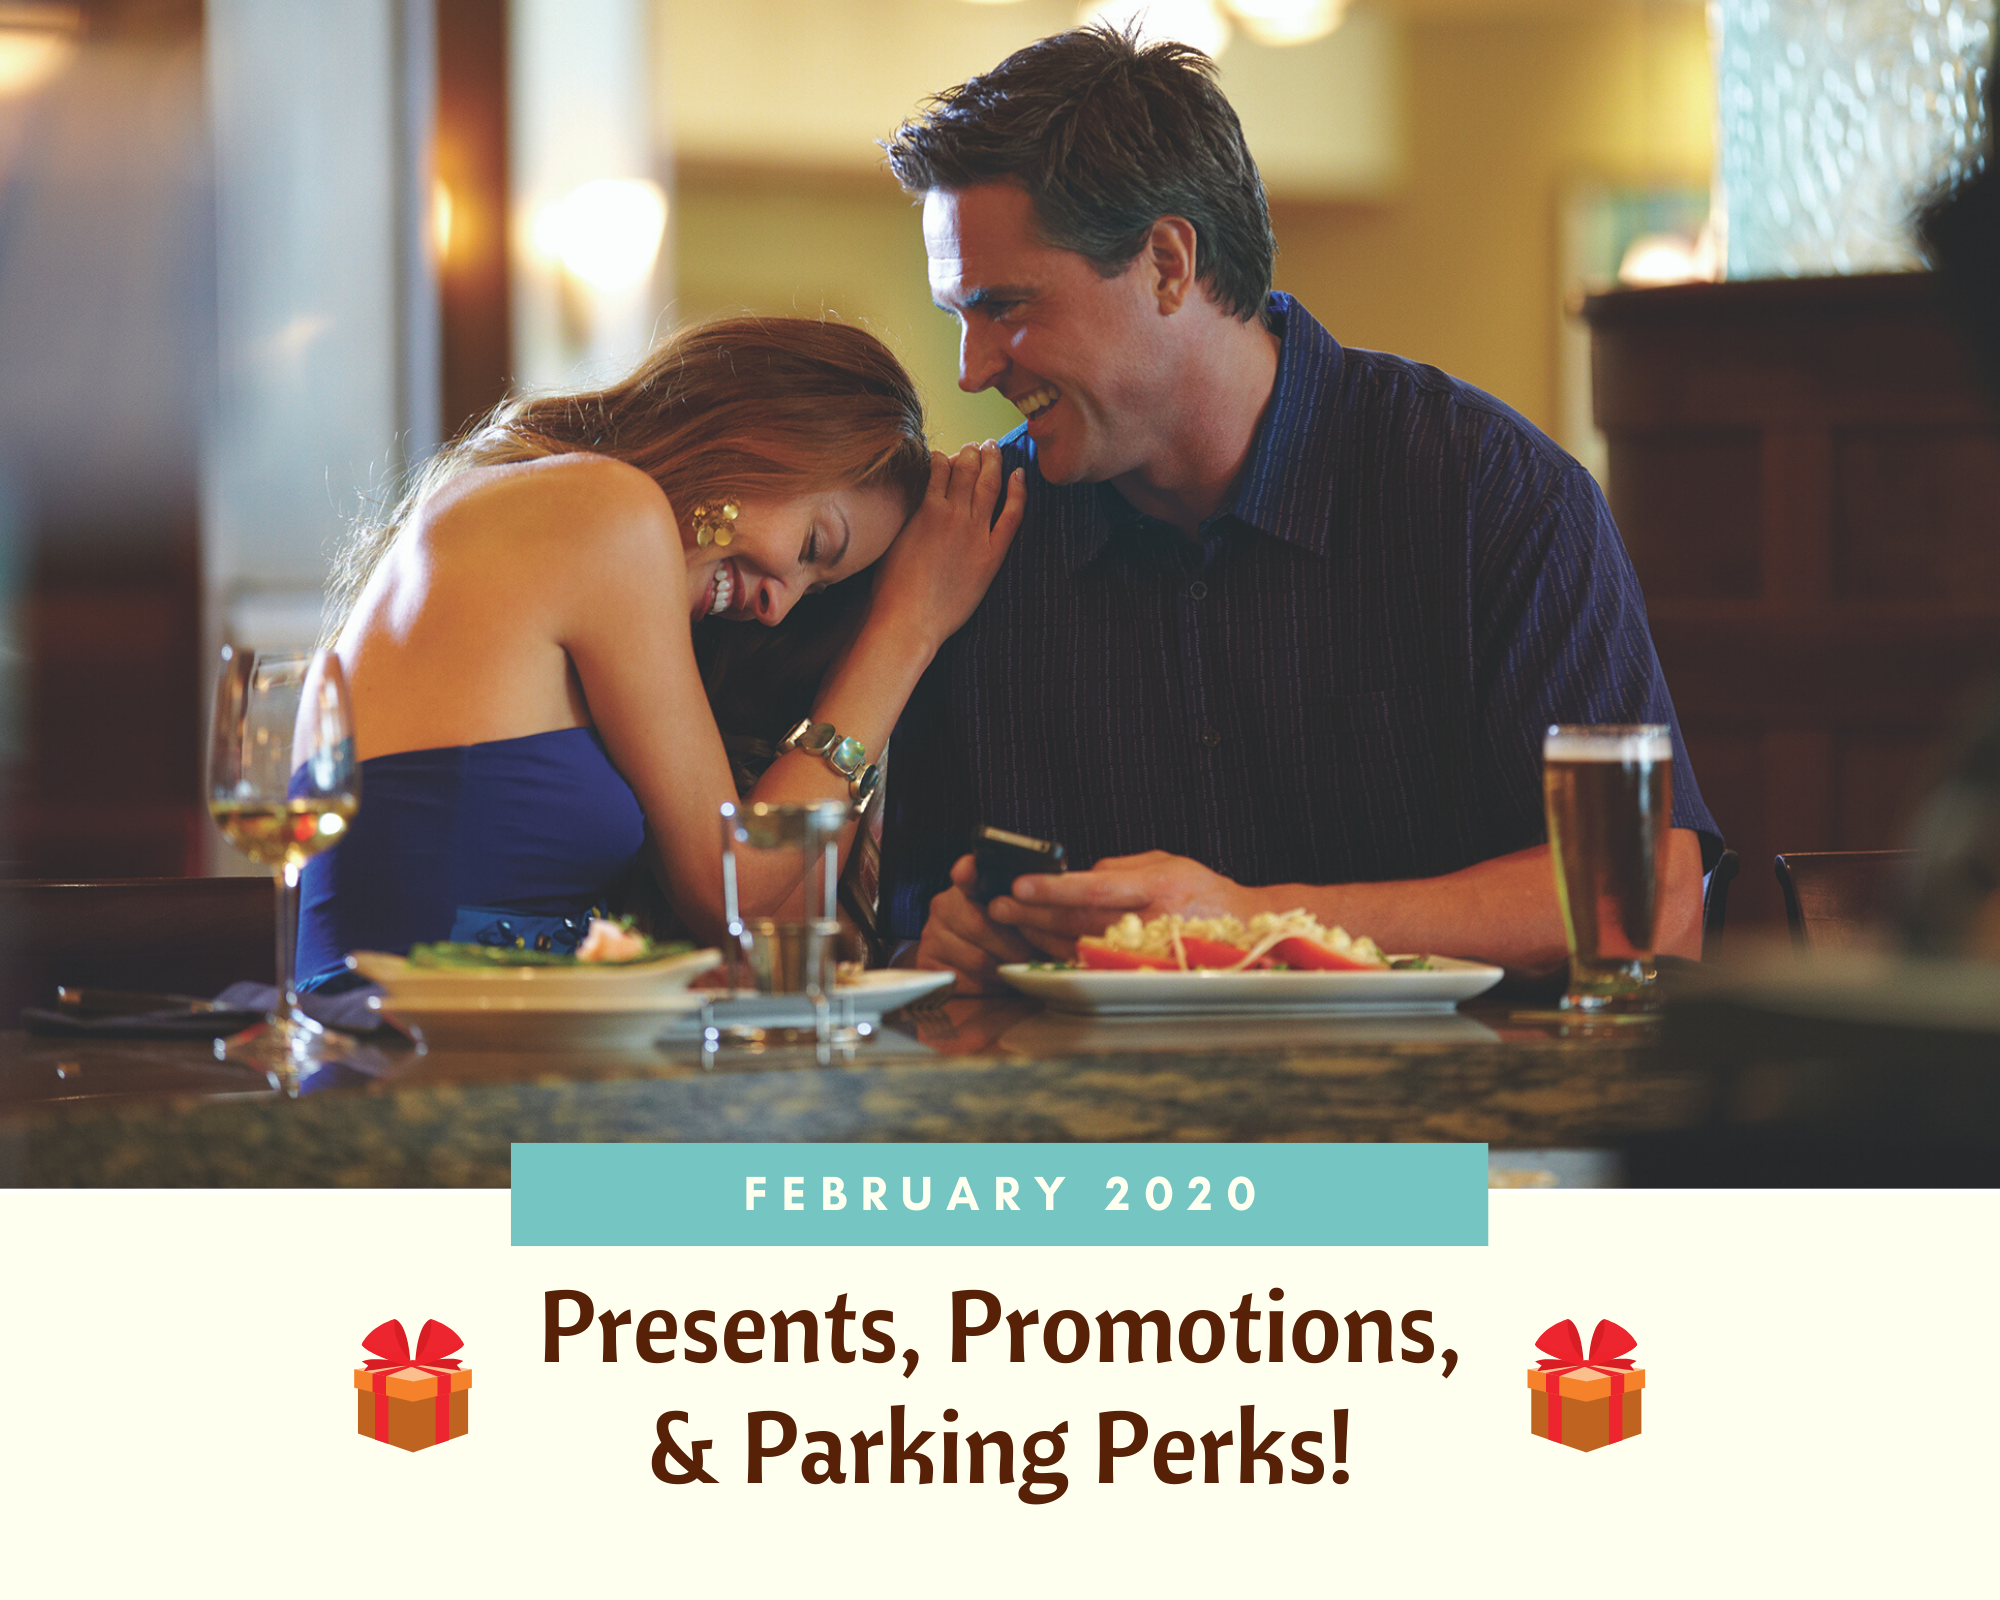 February 2020: Presents, Promotions, and Parking Perks!